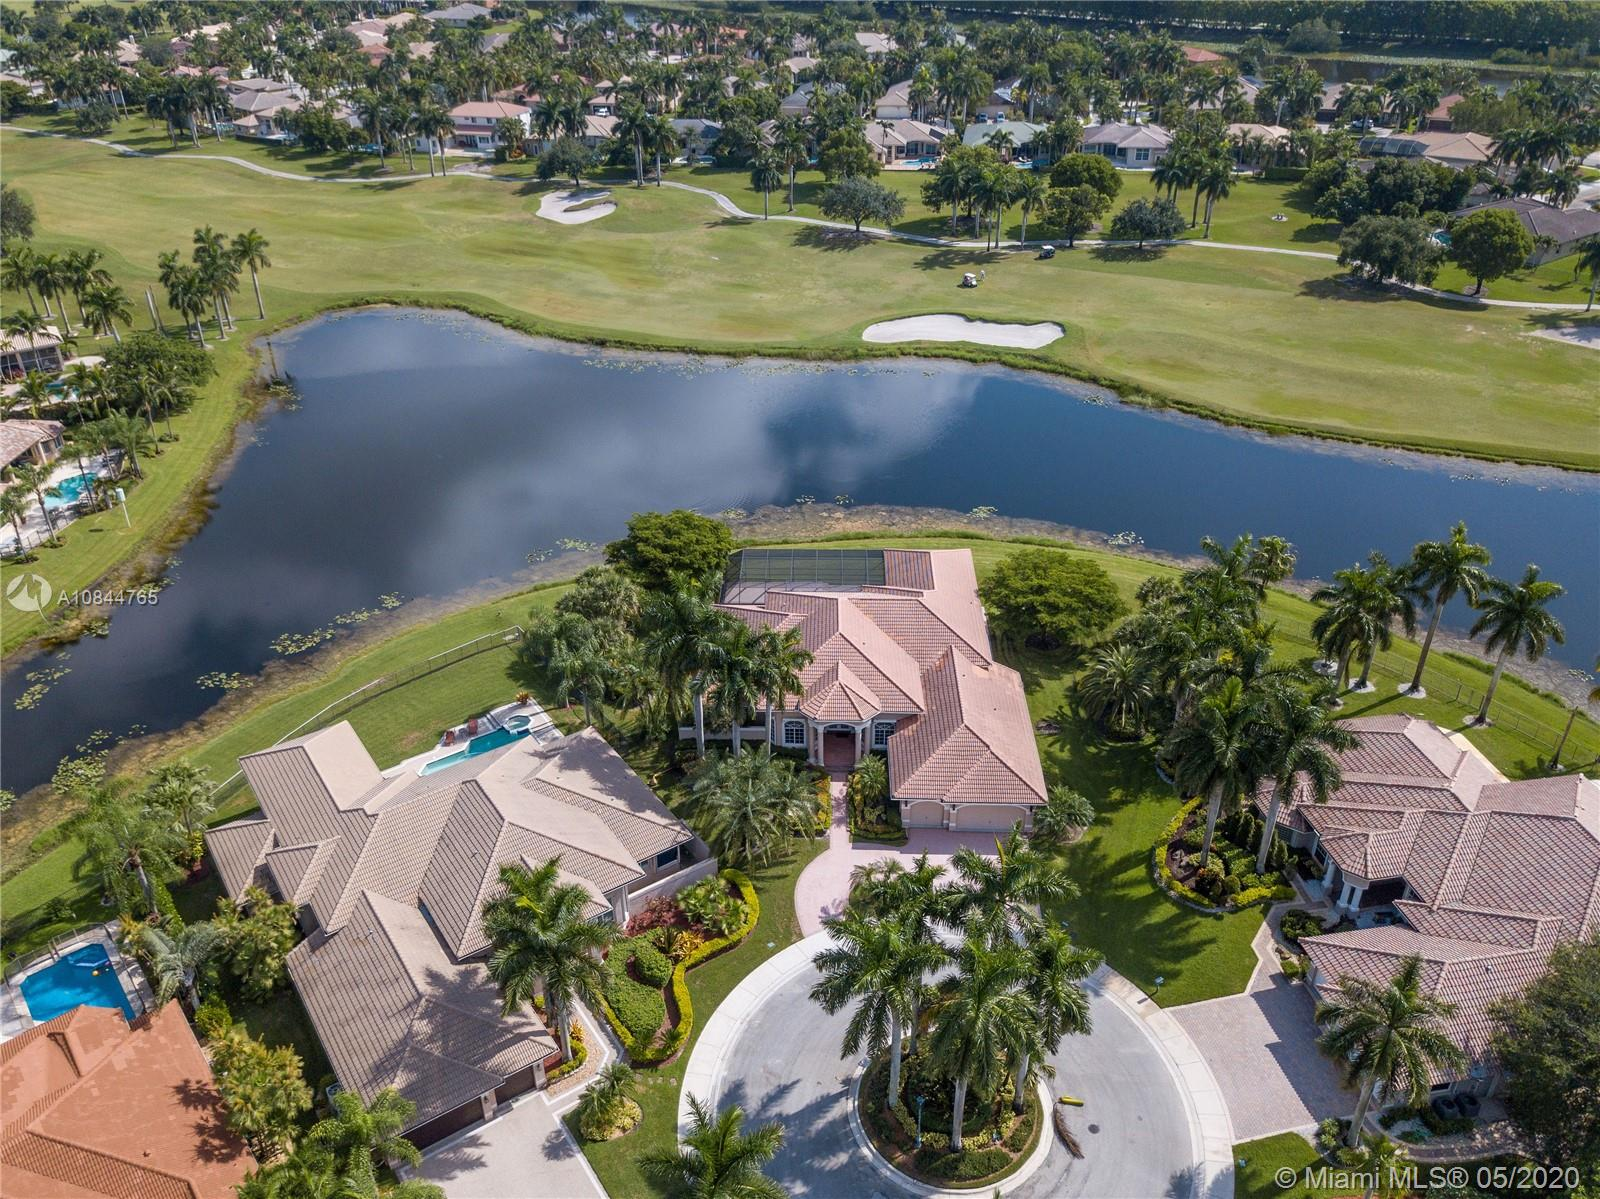 One of the most MAGNIFICENT VIEWS IN WESTON, in the PRESTIGIOUS WESTON HILLS COUNTRY CLUB. HUGE OVERSIZE LOT with 27,000 sq ft and 180-DEGREE BREATHTAKING LAKE AND GOLF VIEWS. Located in a CUL-DE-SAC in the premier section of Poinciana. Live the perfect lifestyle in this spectacular home, with an open concept floorplan and very high ceilings. Windows in every room allows for beautiful natural light and gorgeous views throughout the home. Very tranquil and private outside area, with a huge screened pool/patio enclosure. Master suite with spacious custom closets and a special feature: His and Hers master bathrooms. Accordion shutters. Access to excellent A-RATED PUBLIC SCHOOLS. RENDERINGS WITH PROPOSED DESIGN INCLUDED. THIS PROPERTY IS UNIQUE AND A MUST SEE!